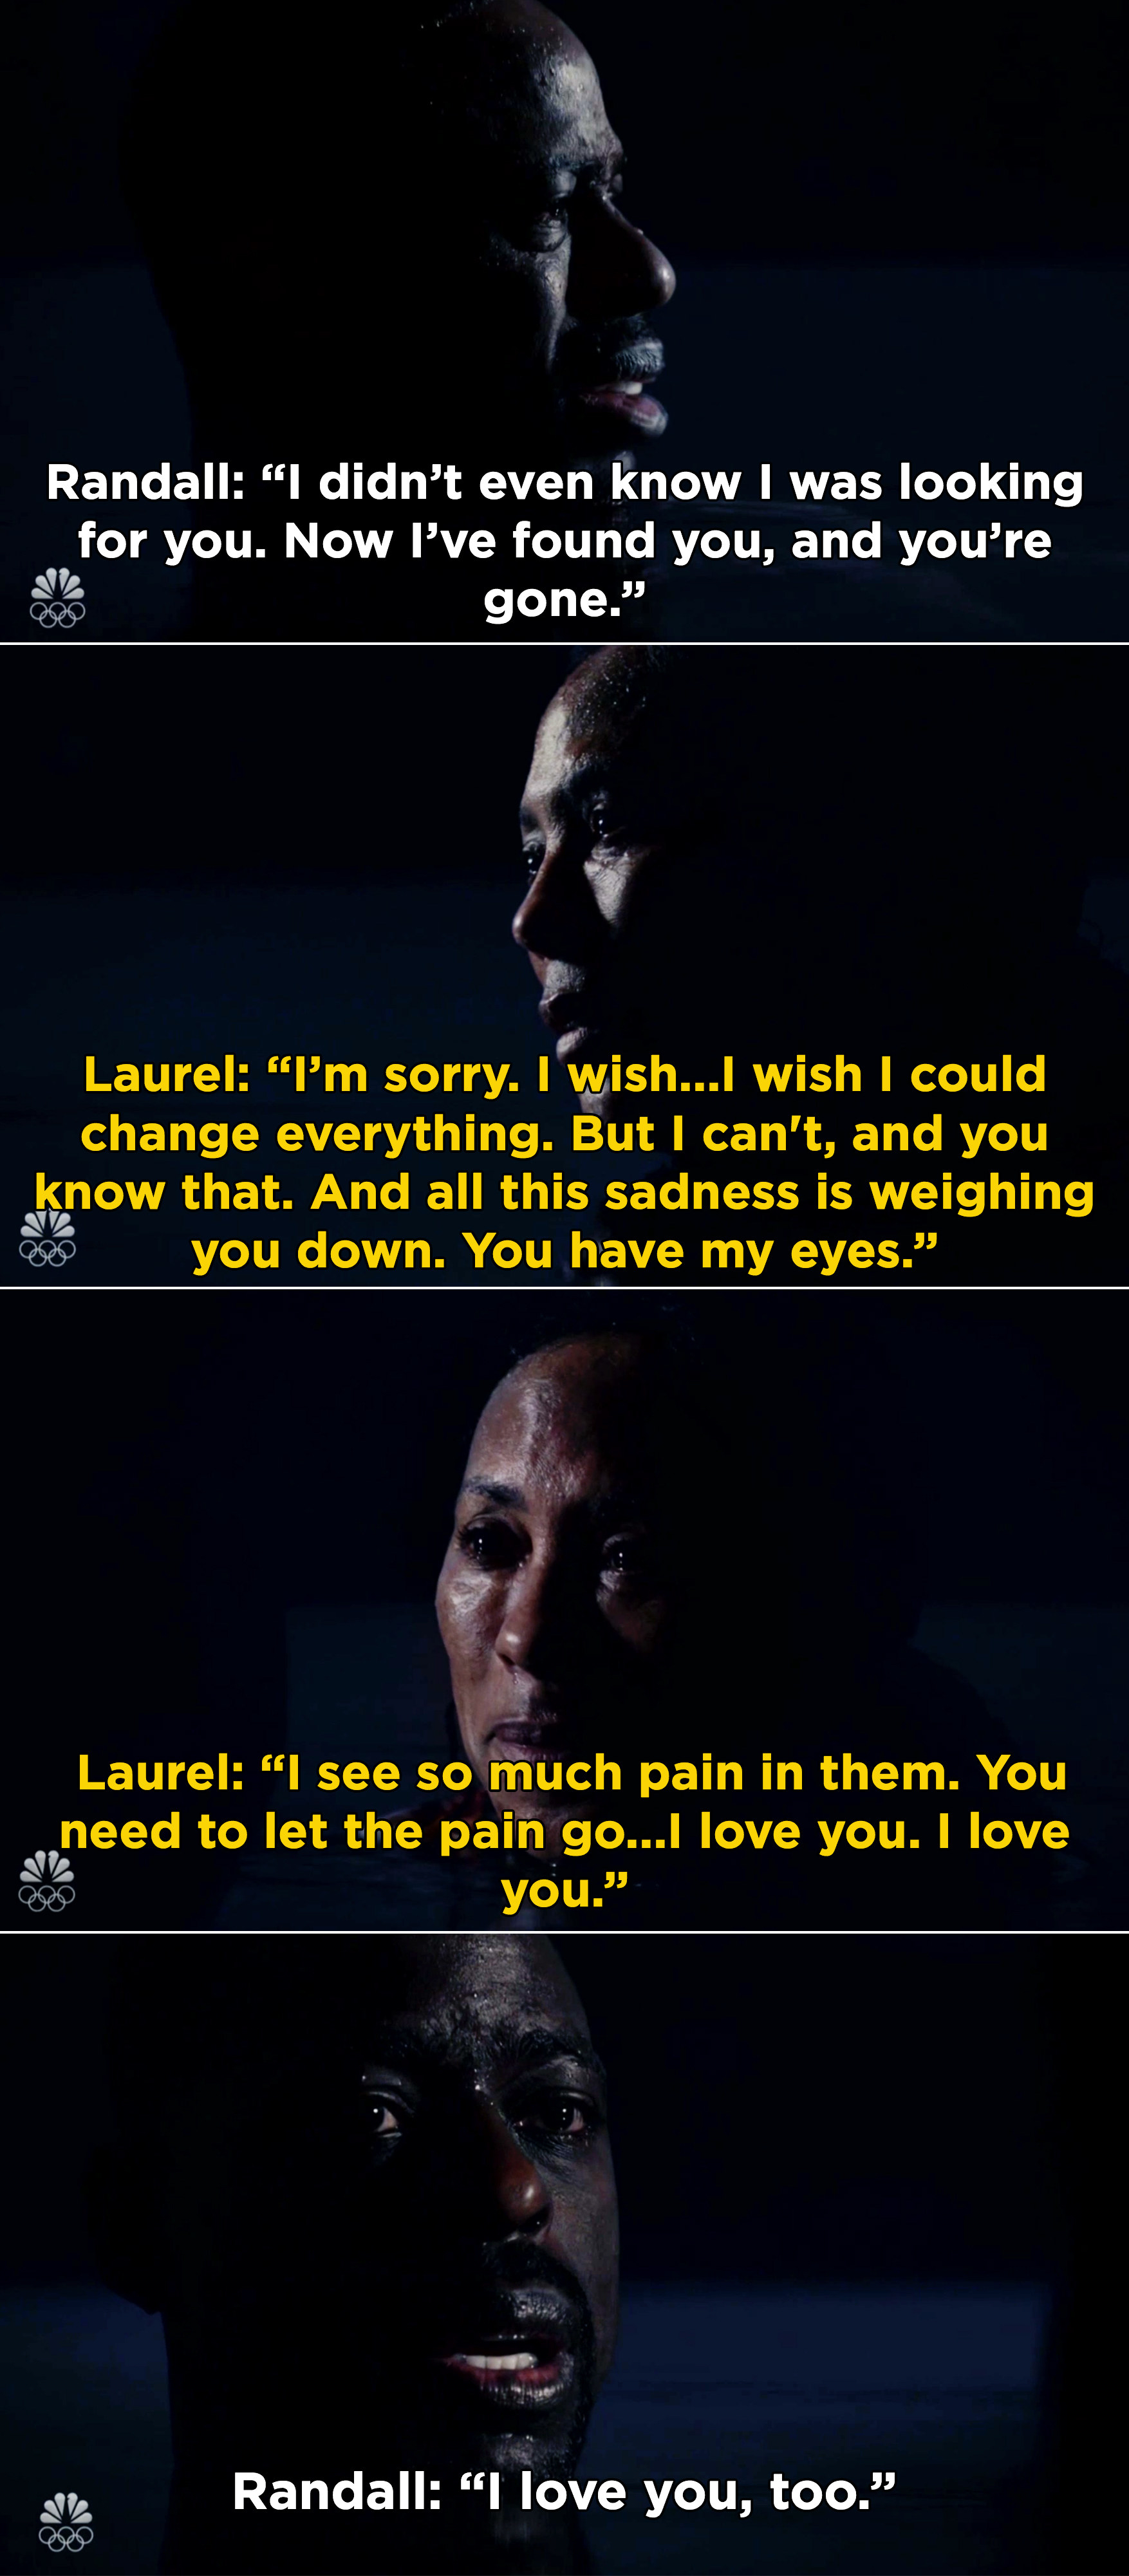 Randall telling Laurel that he didn't know he was looking for her and show she's gone, and Laurel saying that she loves him